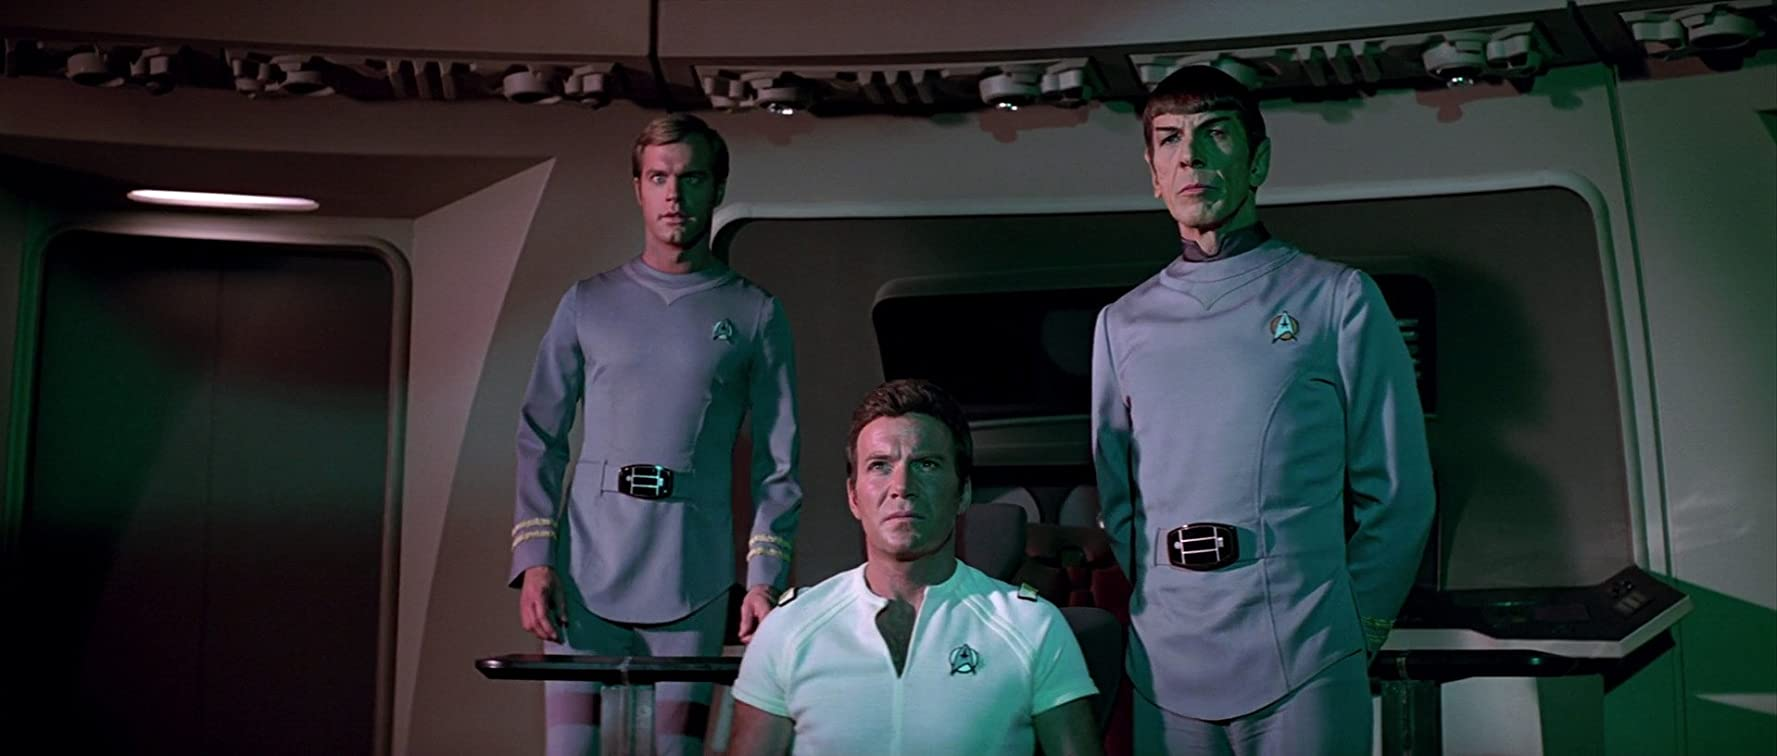 Leonard Nimoy, William Shatner, and Stephen Collins in Star Trek: The Motion Picture (1979)